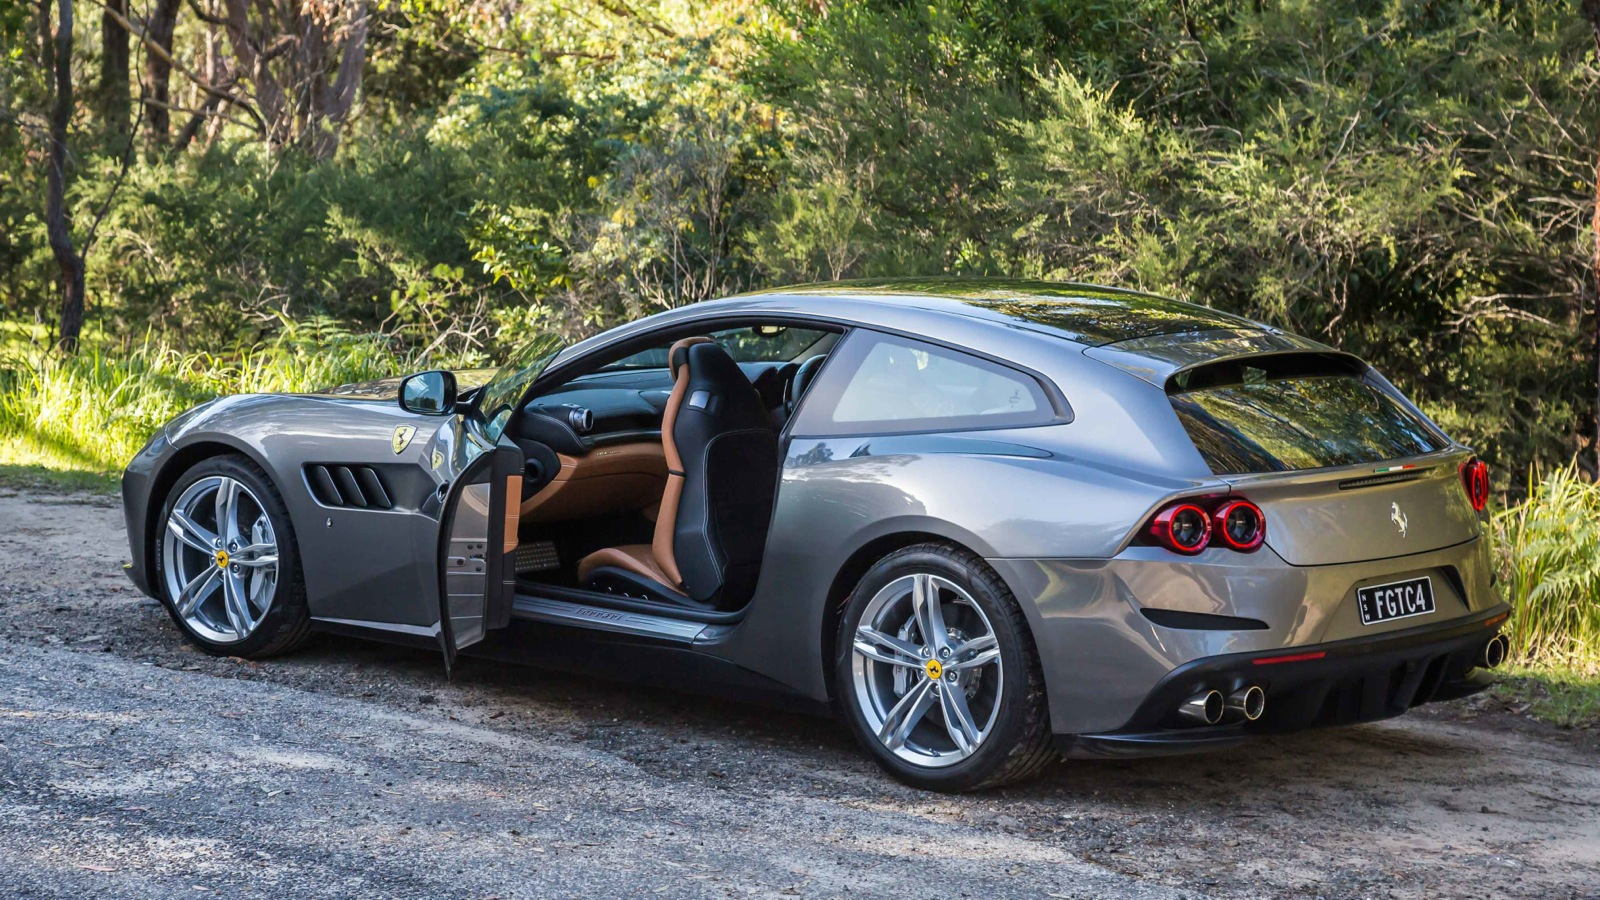 2017 ferrari gtc4 lusso review caradvice. Black Bedroom Furniture Sets. Home Design Ideas